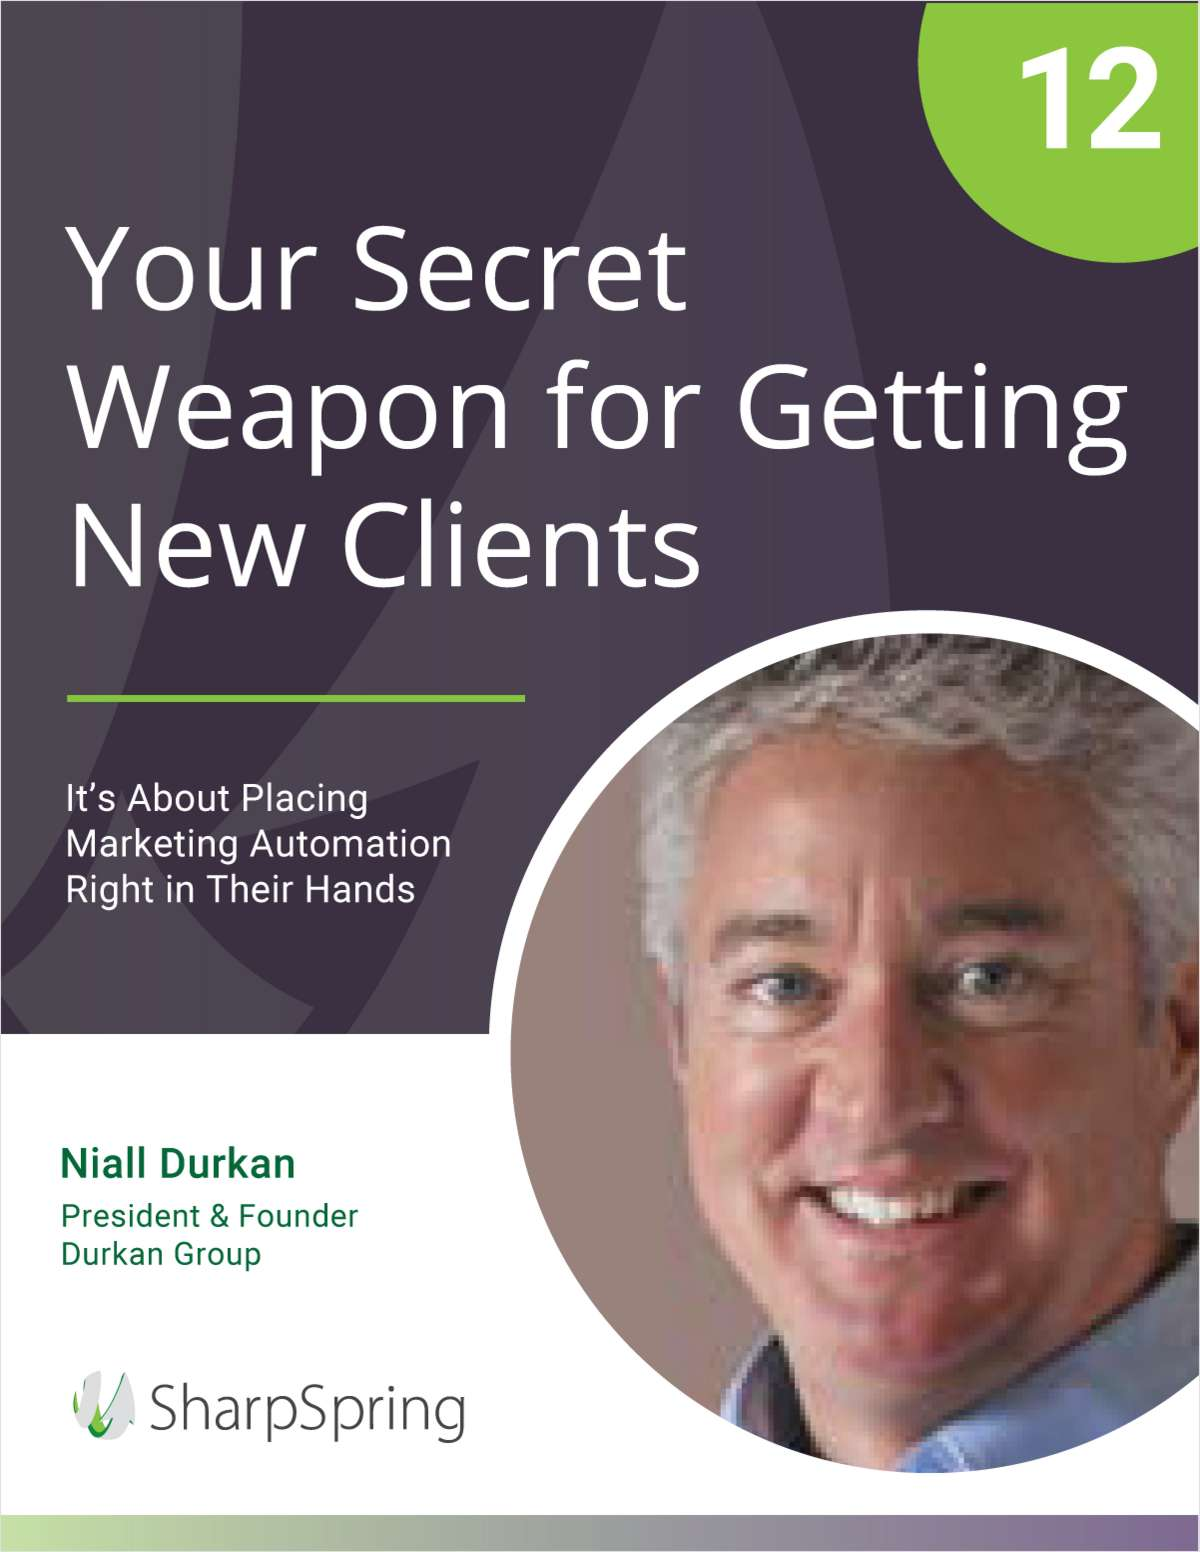 6 Agency 'Secret Weapons' to Signing Marketing Clients